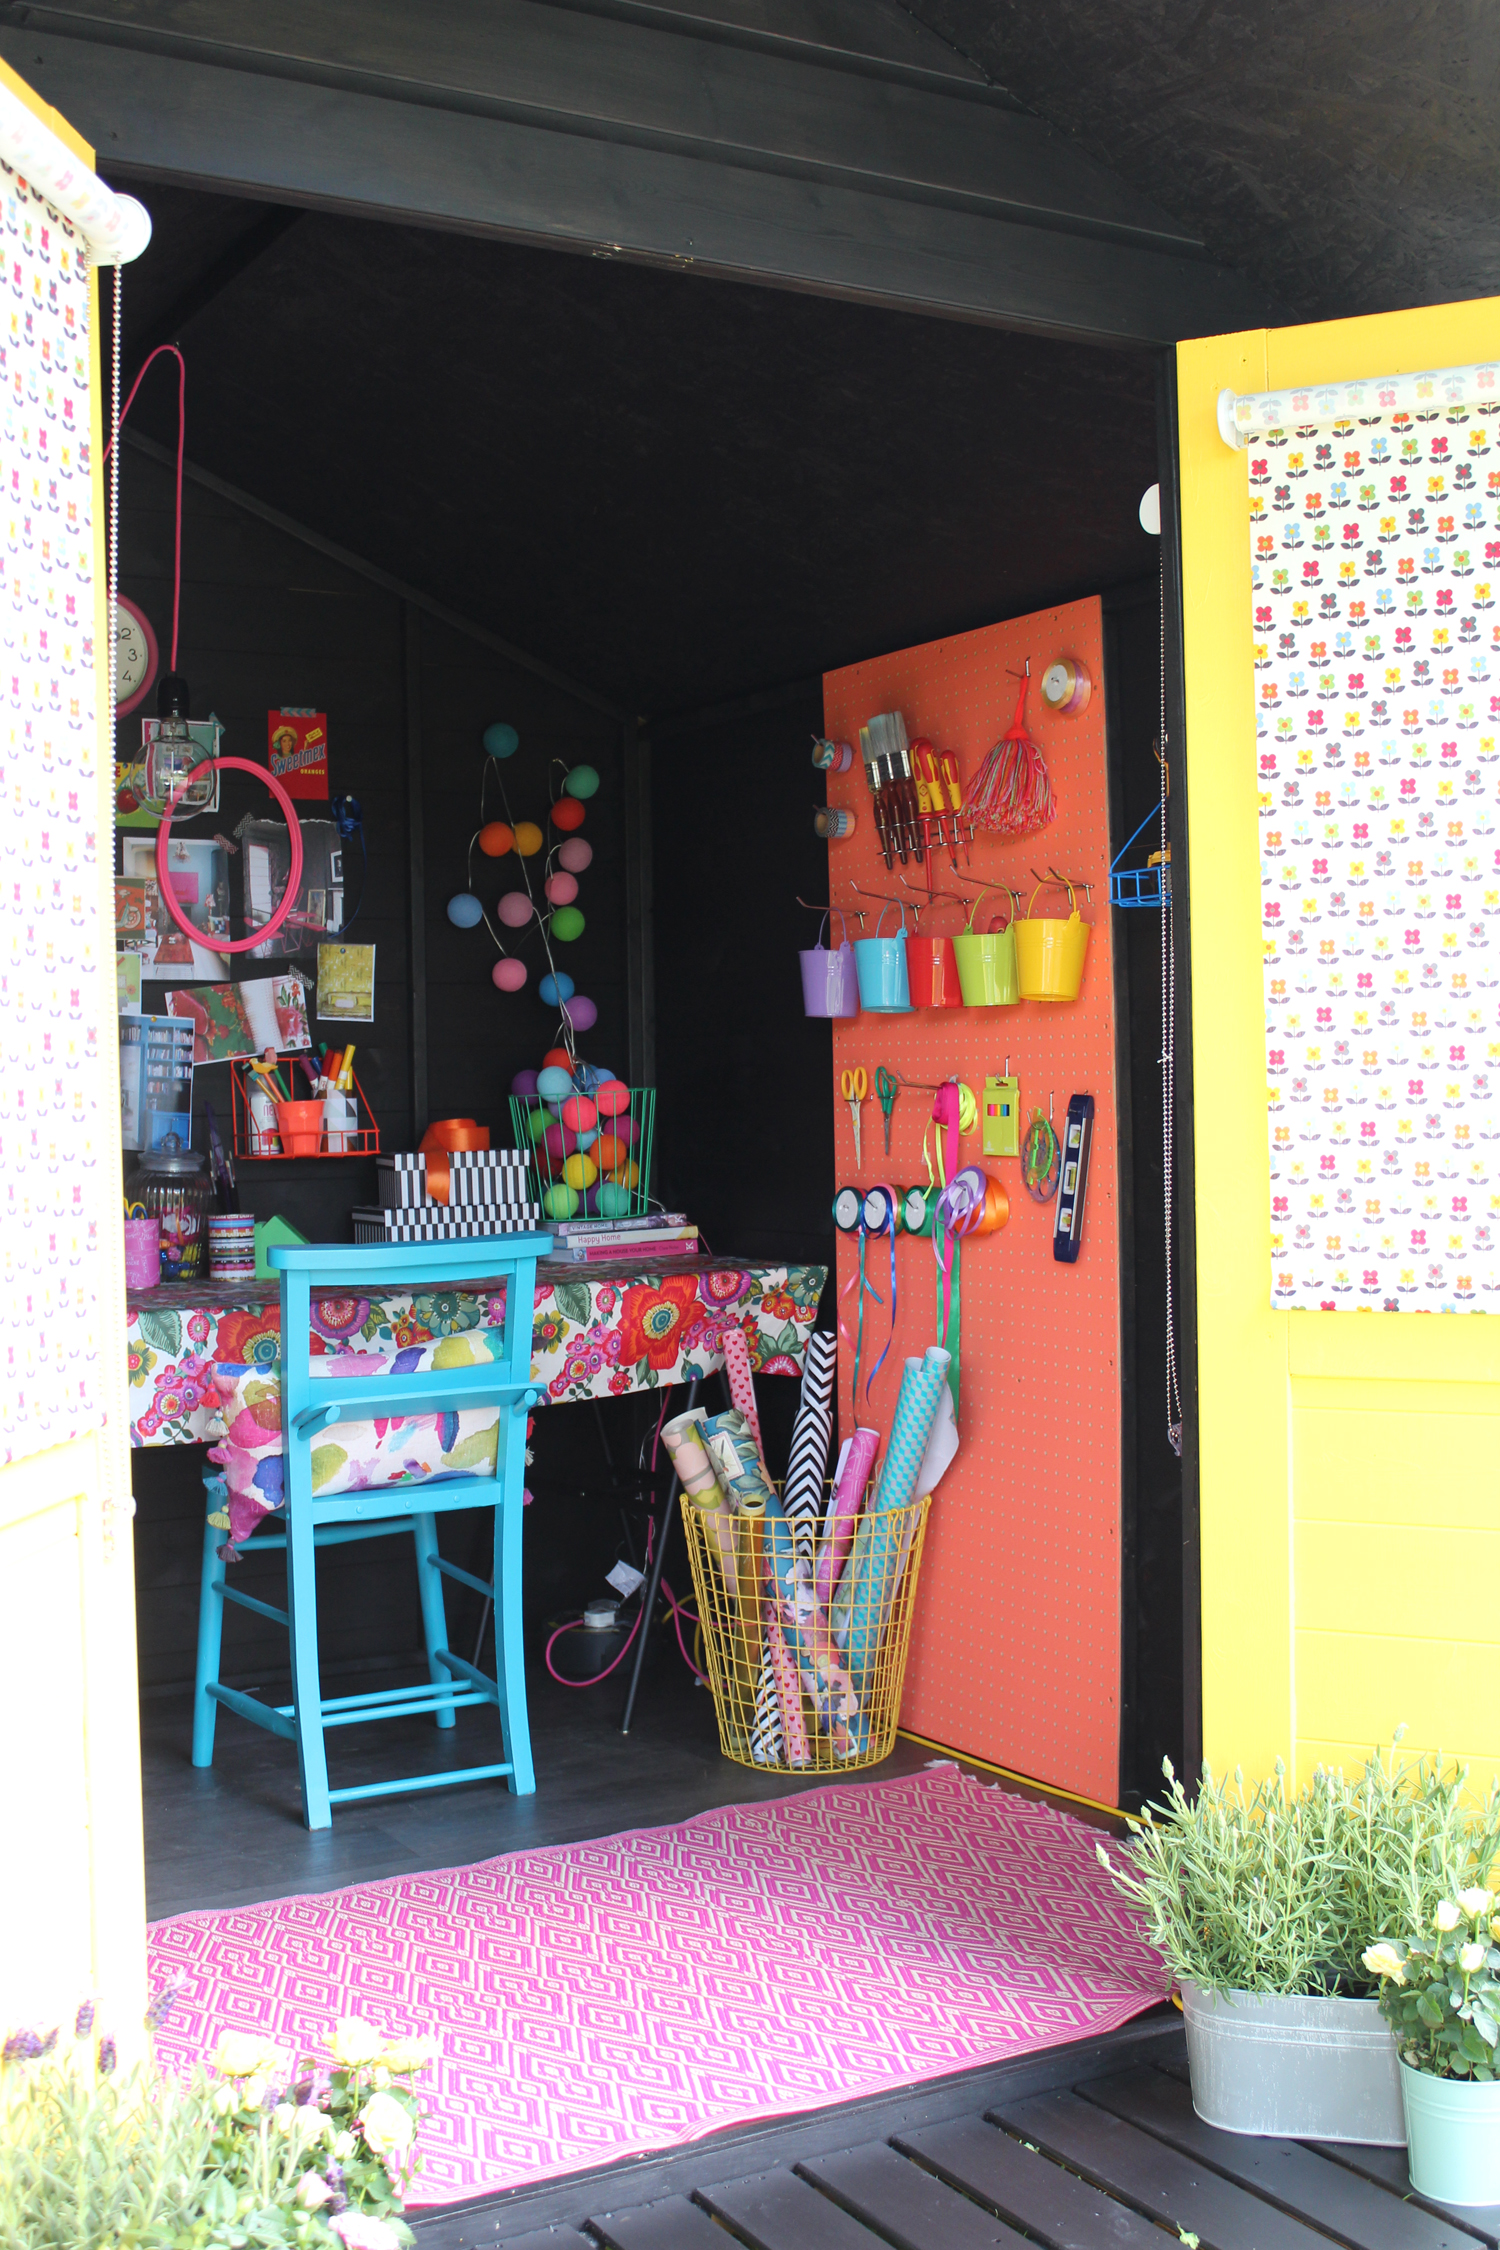 Shed Pictures Design: How To Interior Design A She Shed- Part 2